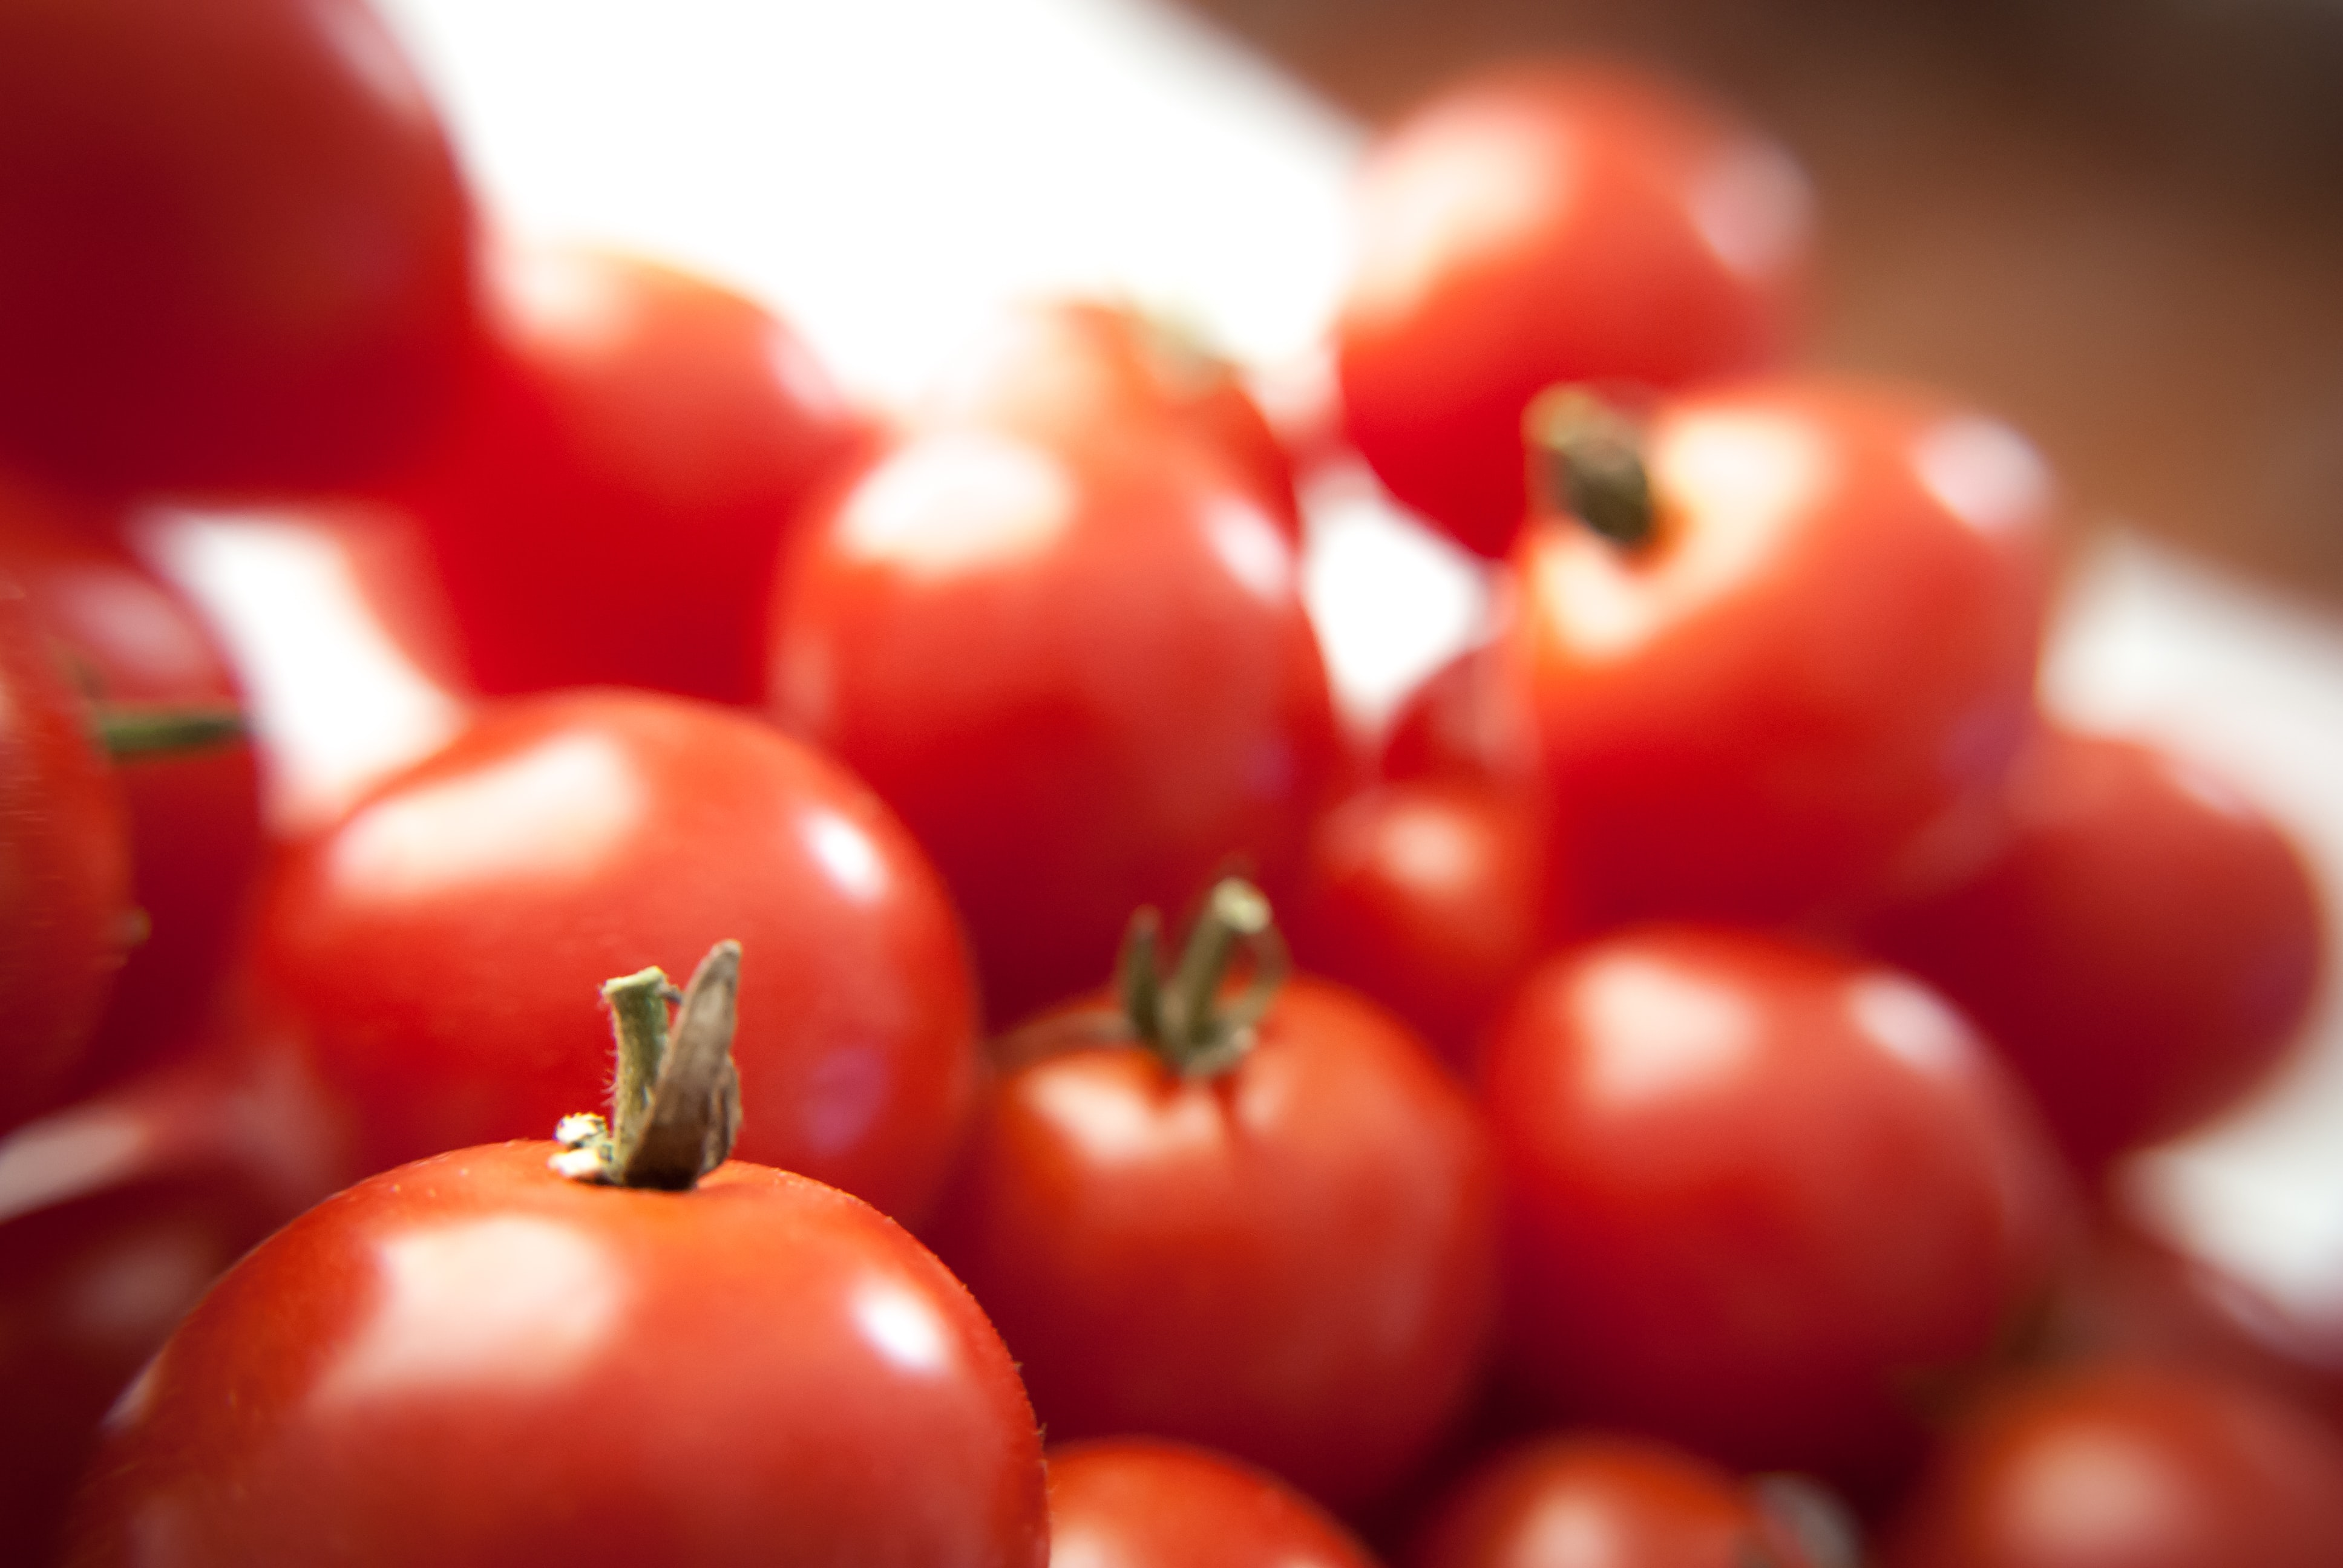 shallow focus photography of tomatoes